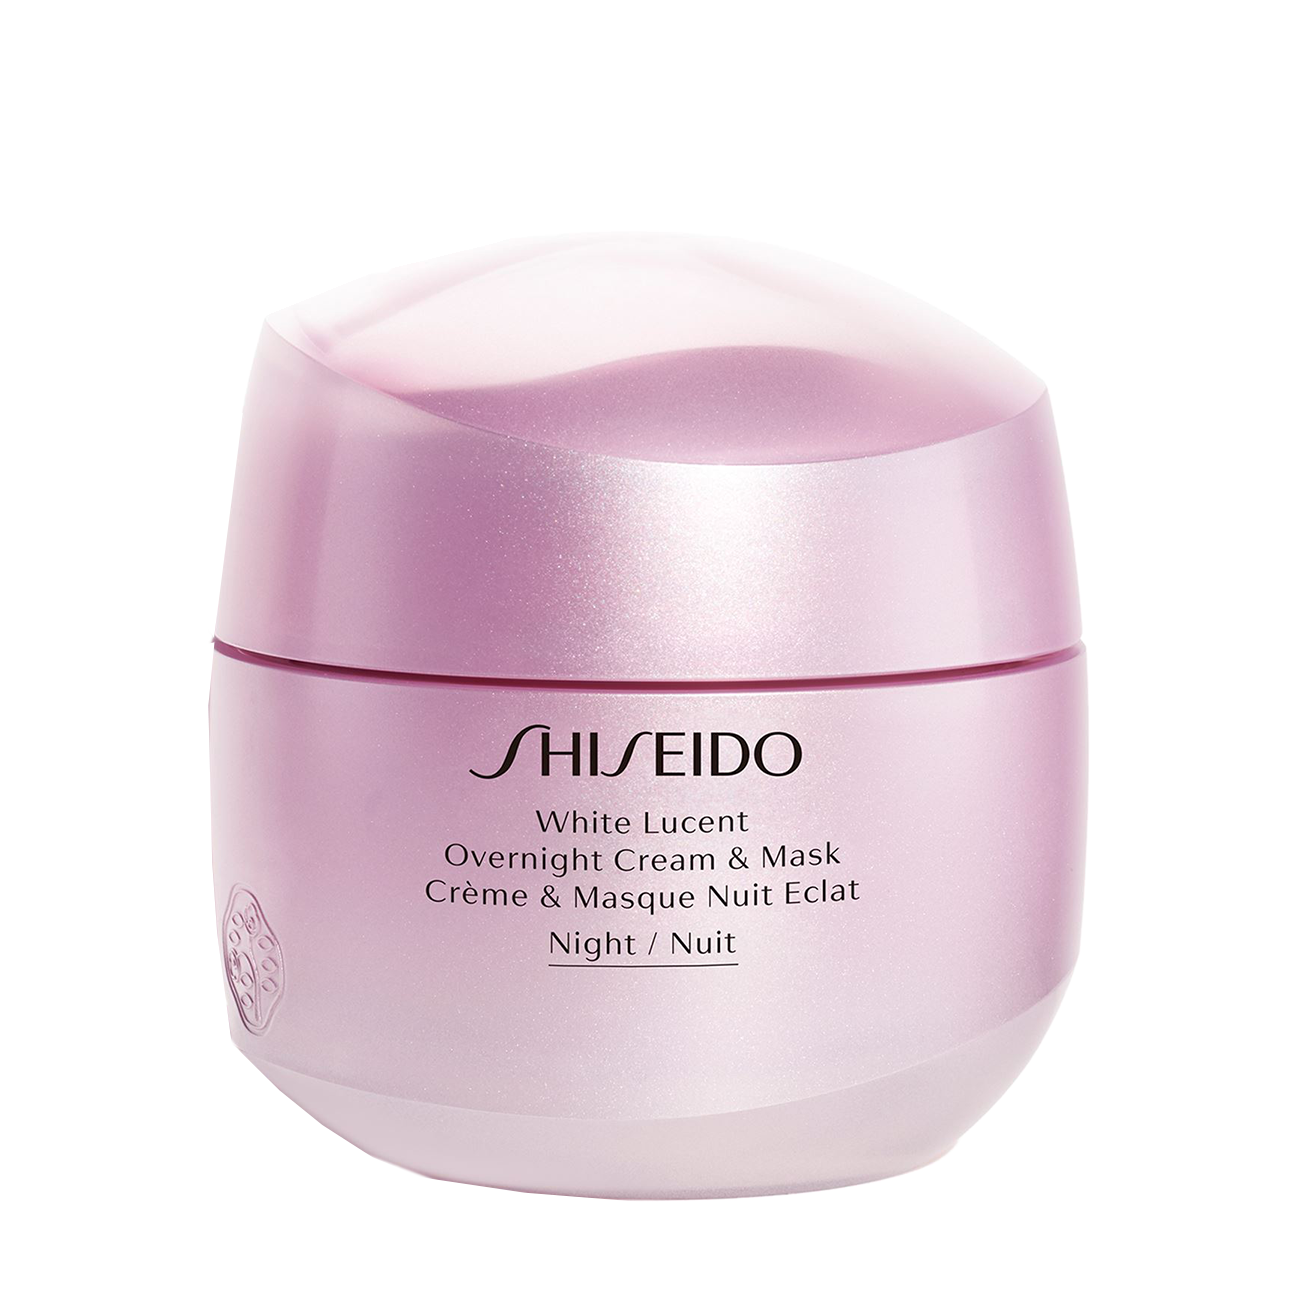 White Lucent Overnight Cream And Mask 75ml